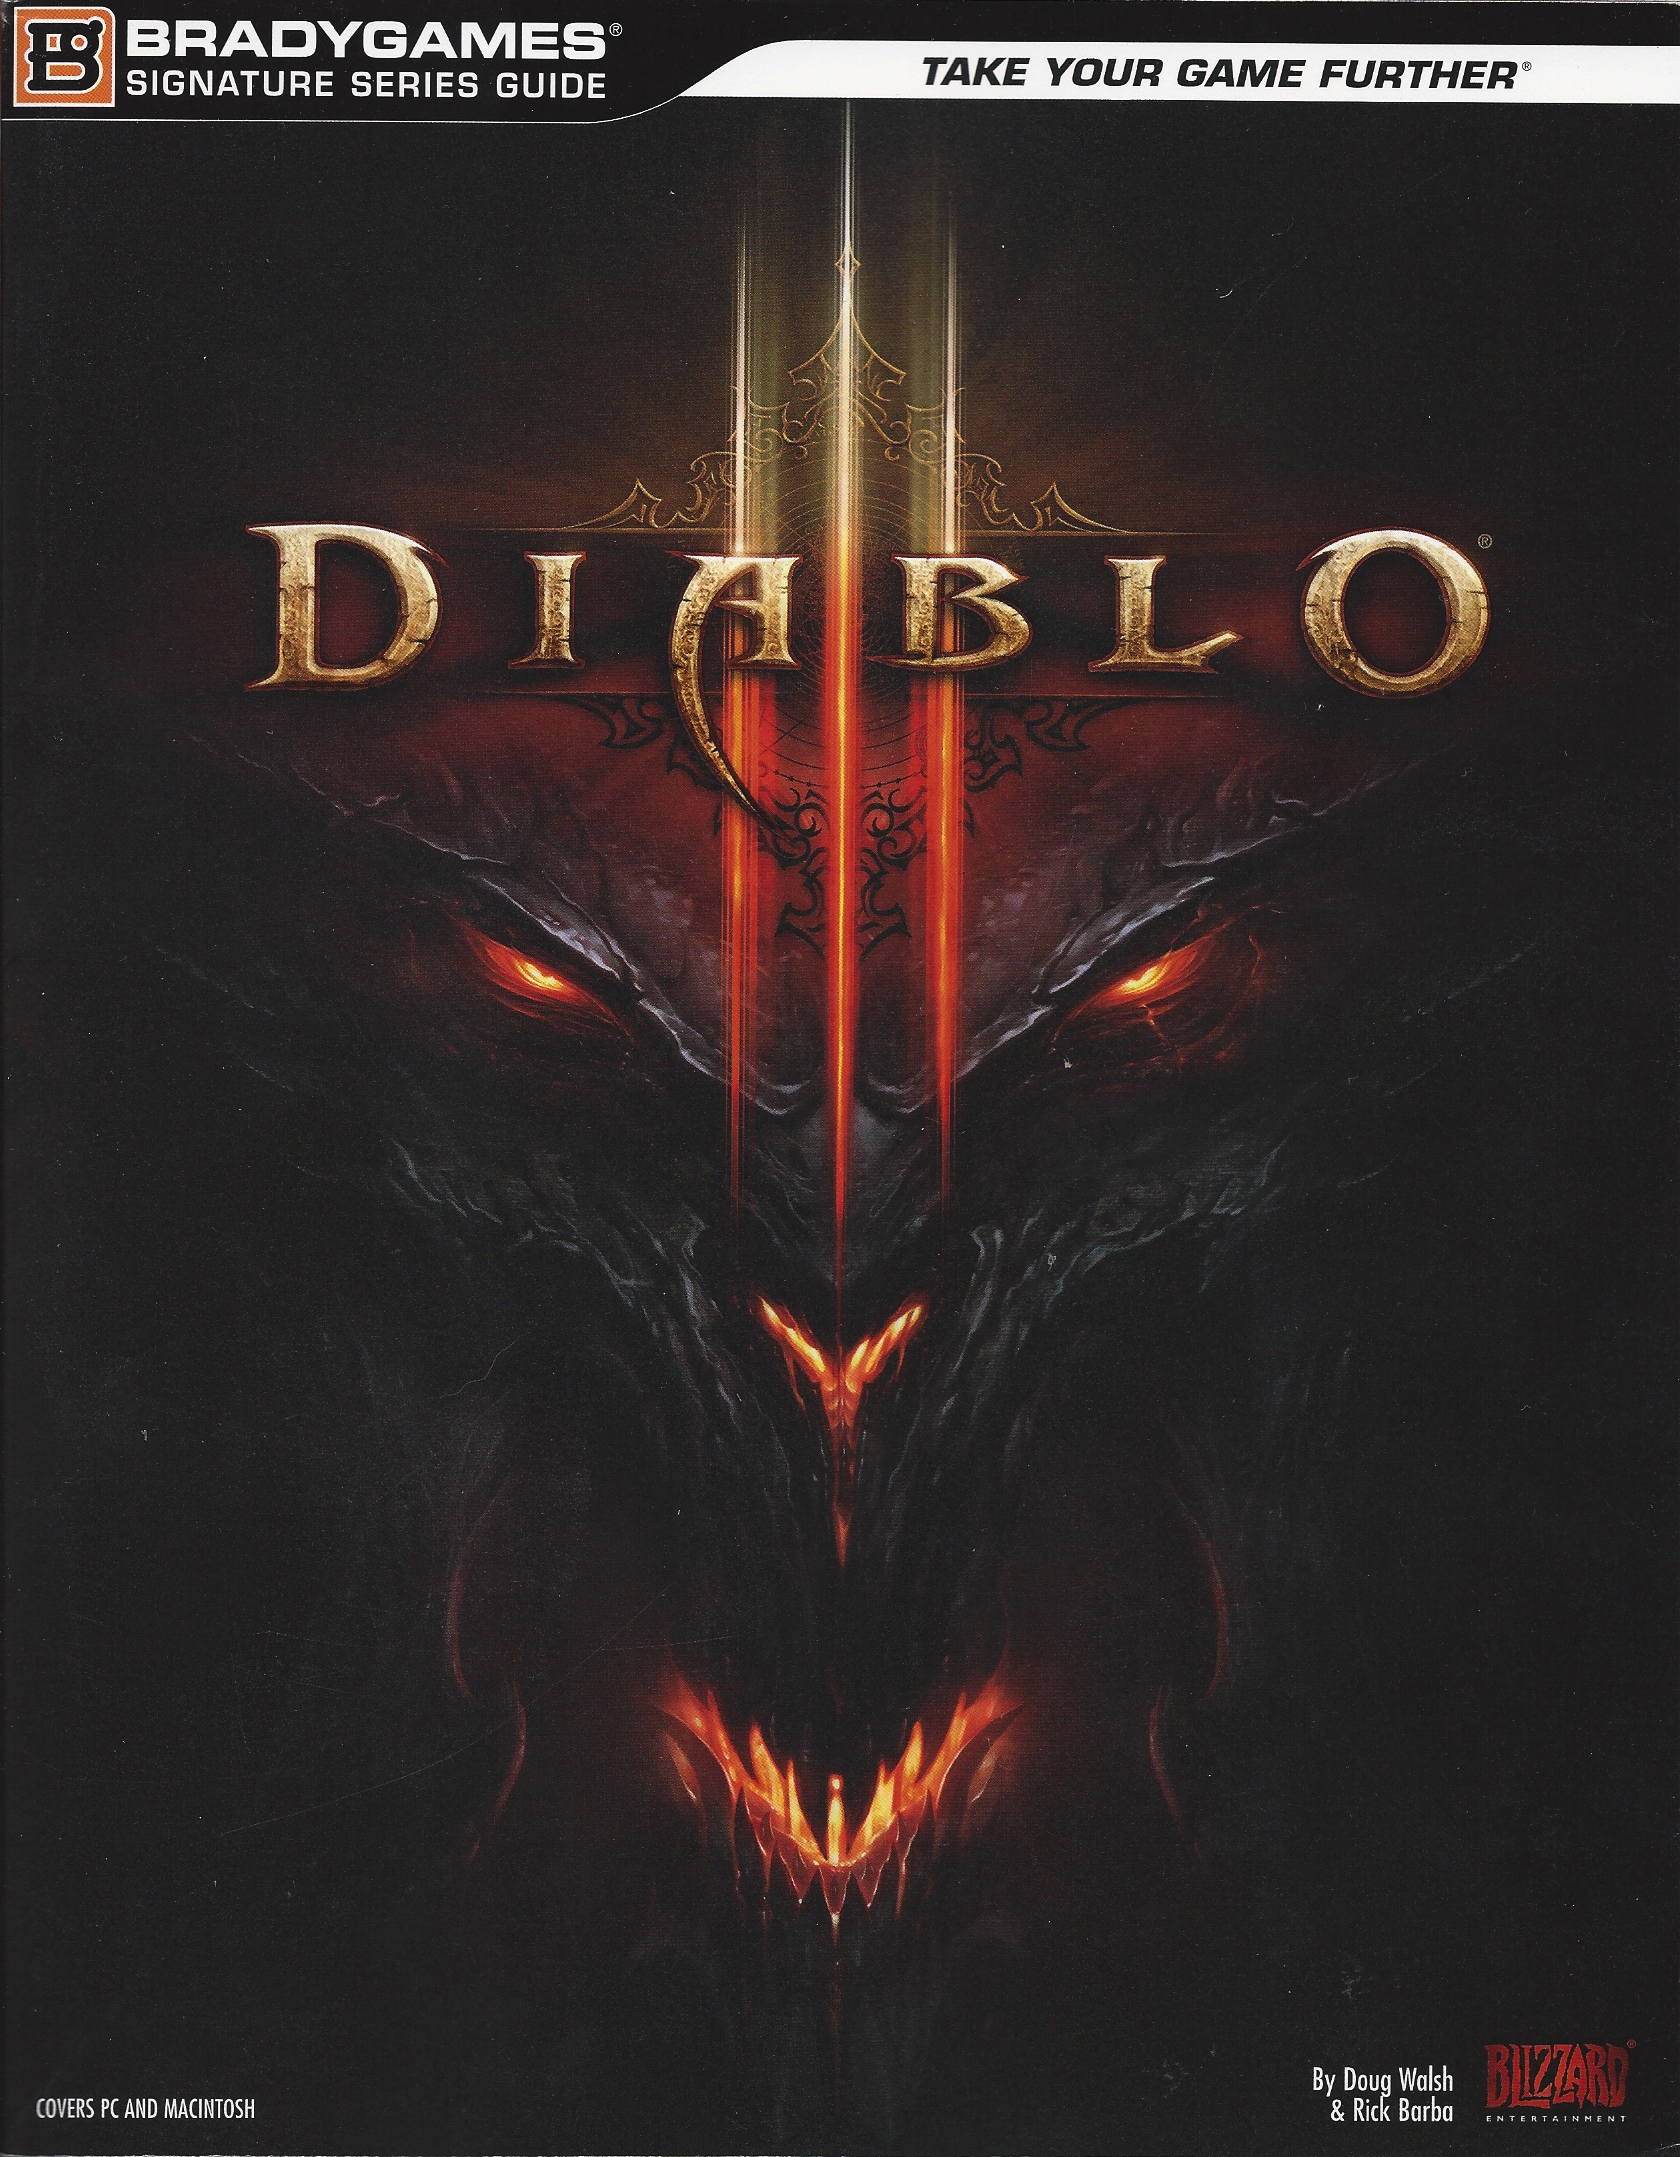 Diablo III strategy guide